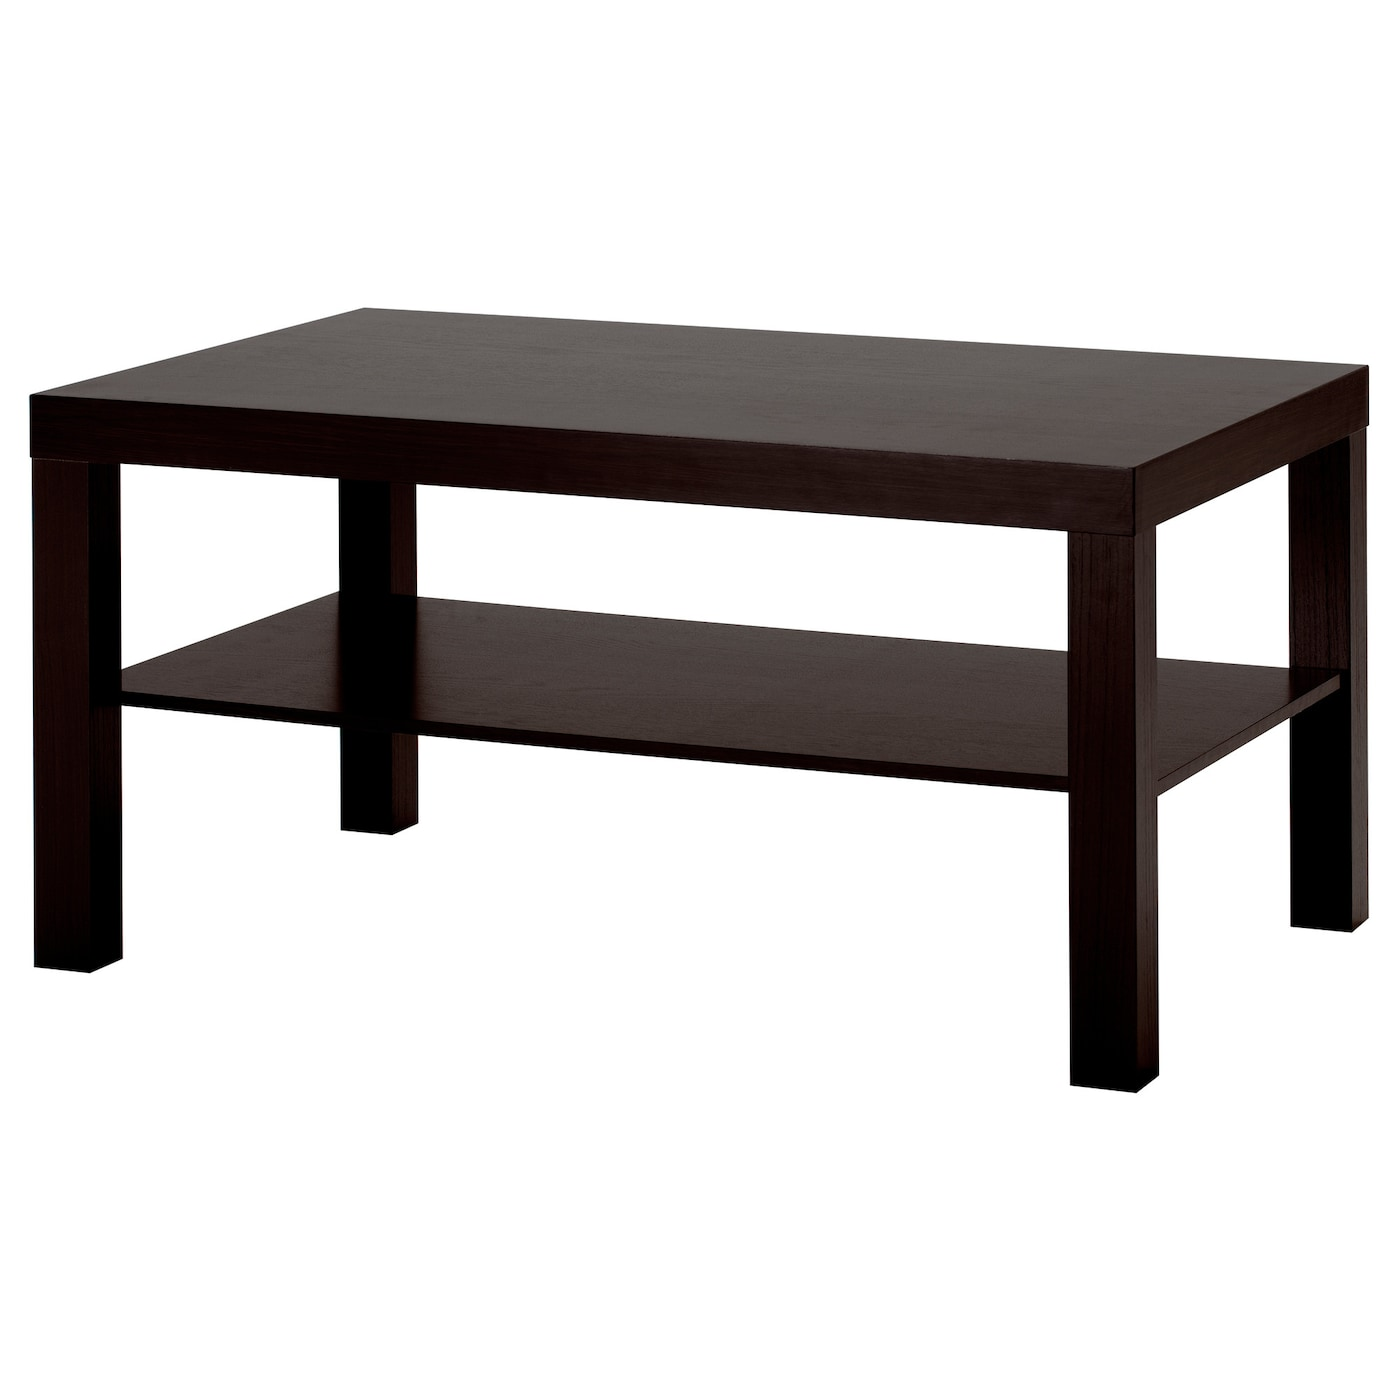 Lack Coffee Table Black Brown 90x55 Cm Ikea